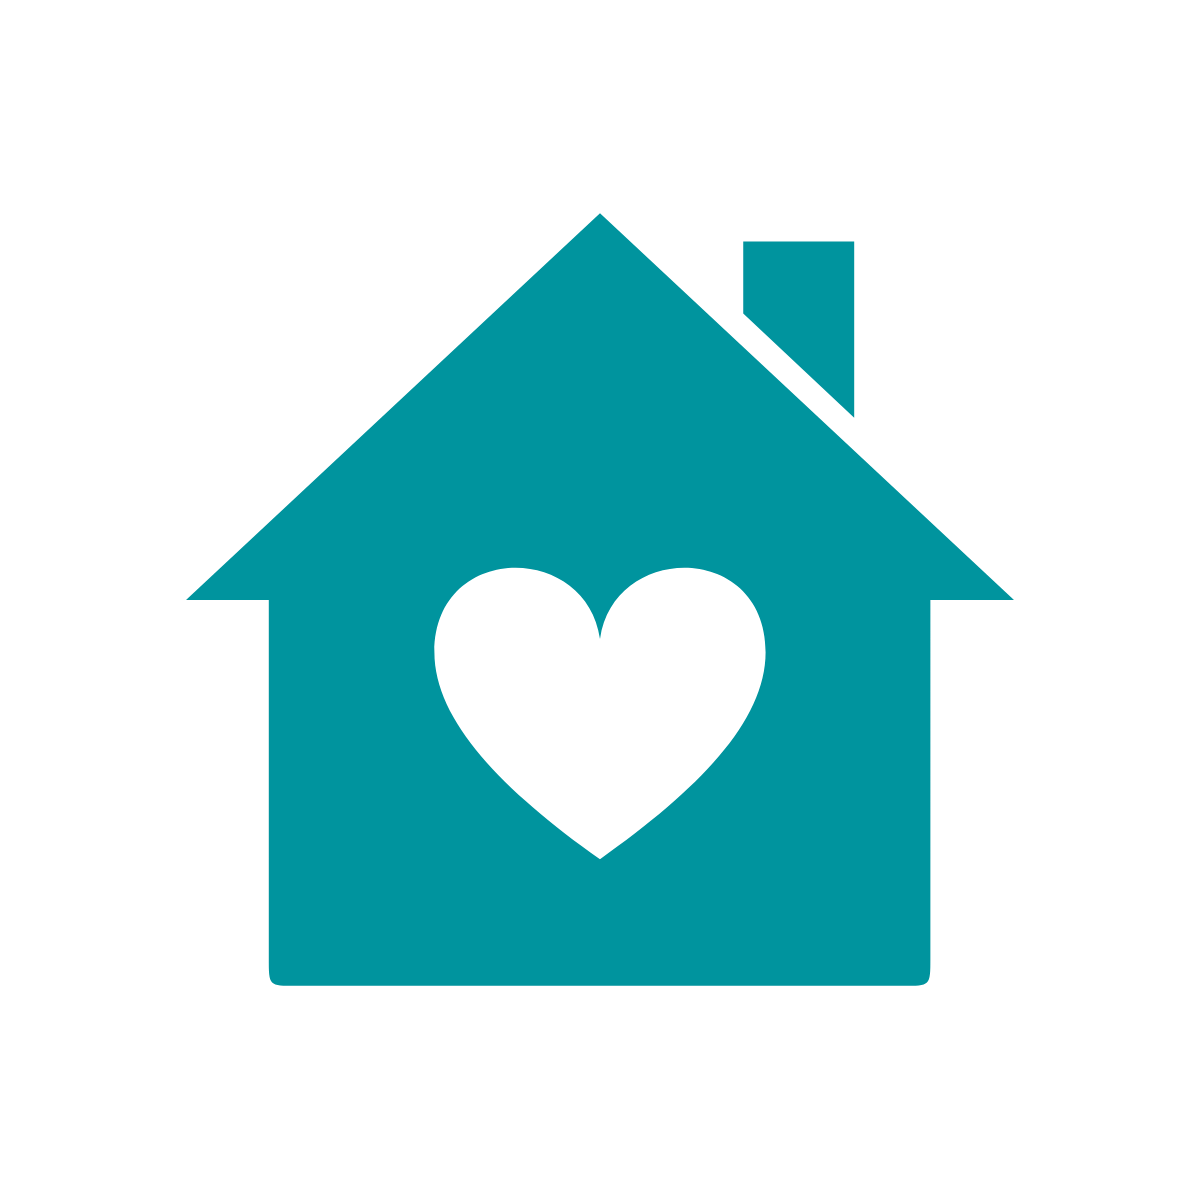 Icon of home with heart inside it